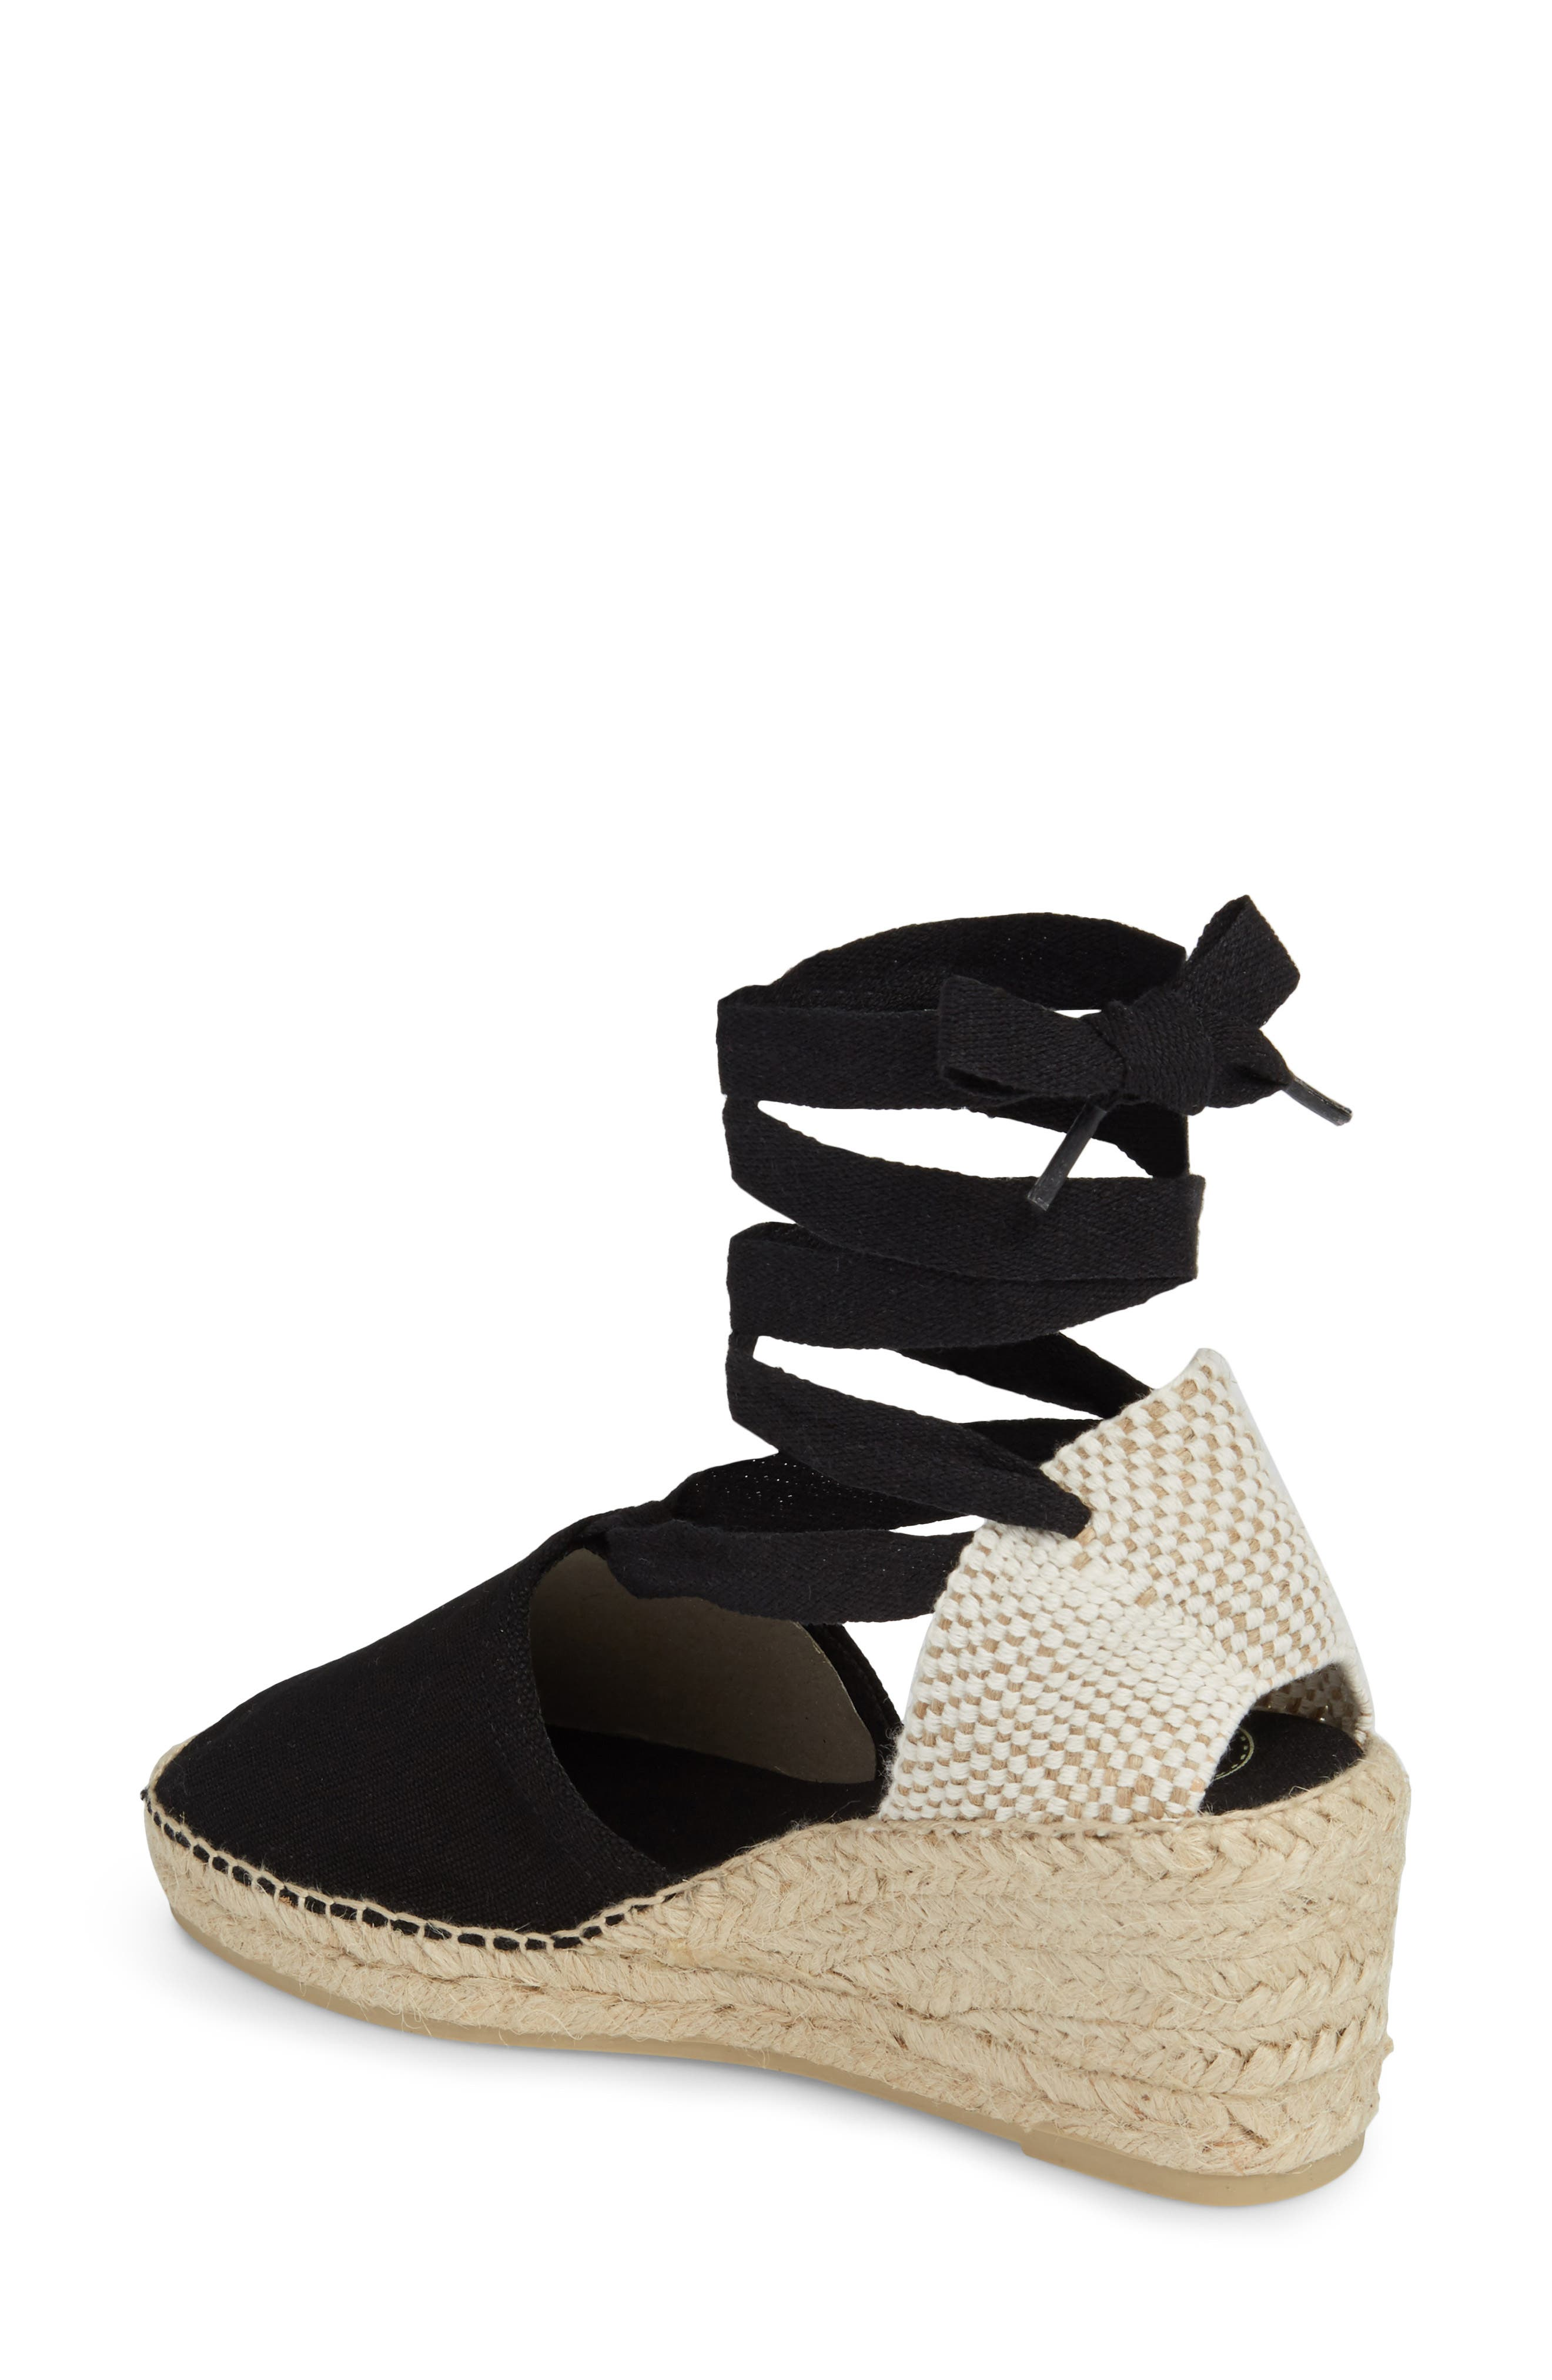 TONI PONS, Valencia Wraparound Espadrille Wedge, Alternate thumbnail 2, color, BLACK FABRIC